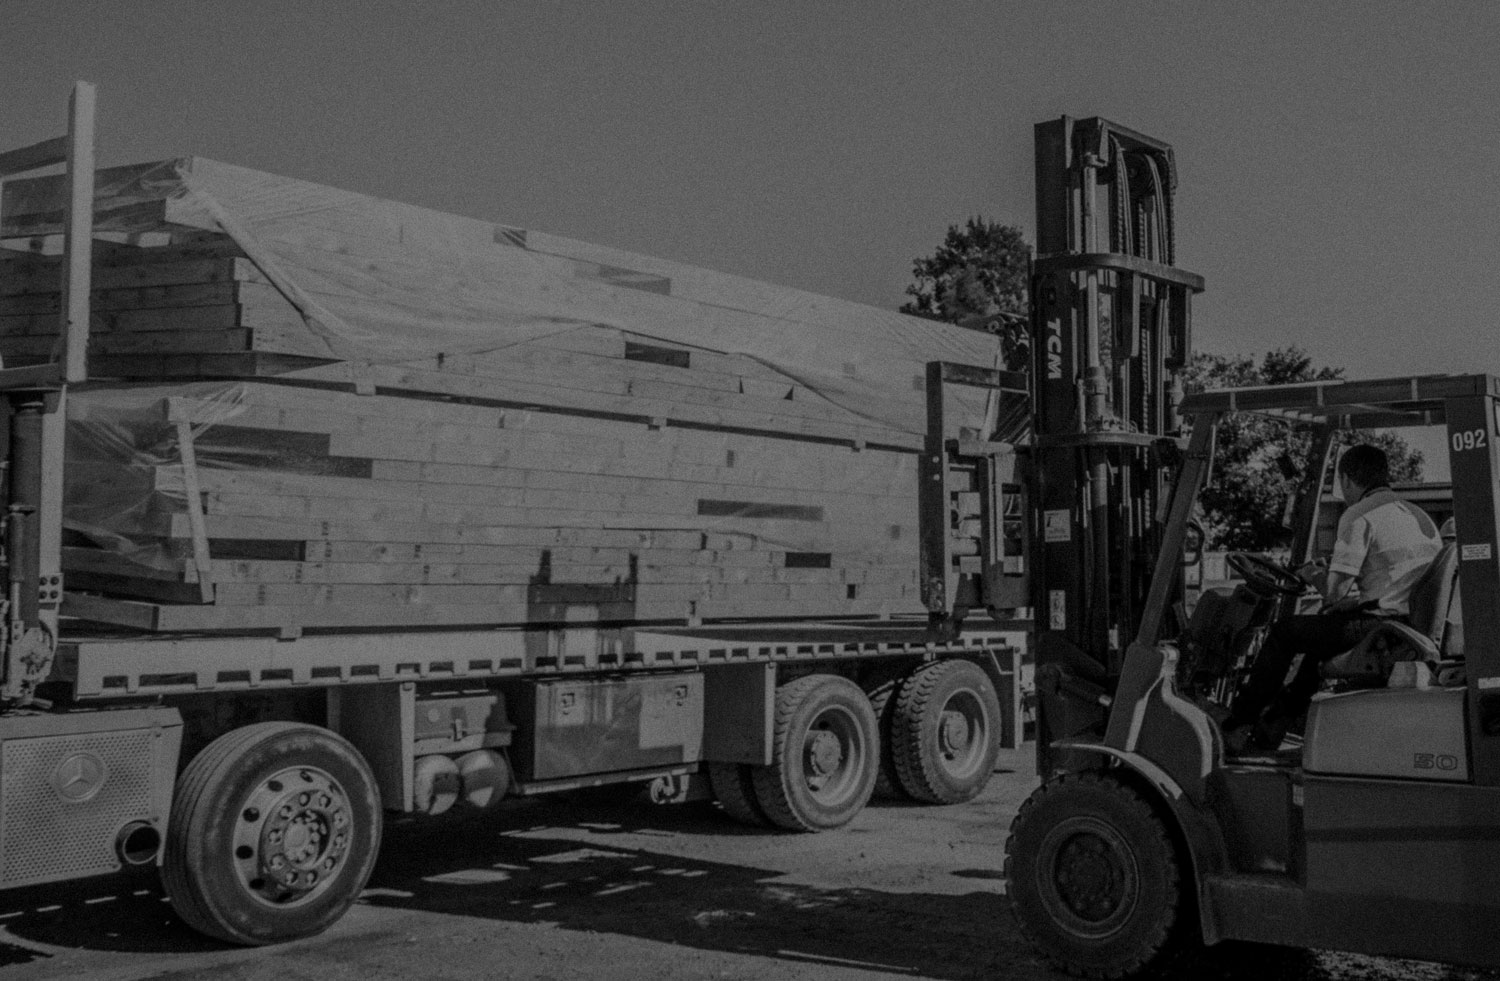 2017 - 2017 also saw the end of Taranaki Prenail and Truss when Rohan and Jonathan rebranded the business to Titan Precut. By this time the business had two trucks delivering pre-nailed frames and trusses from Manawatu to Waikato.